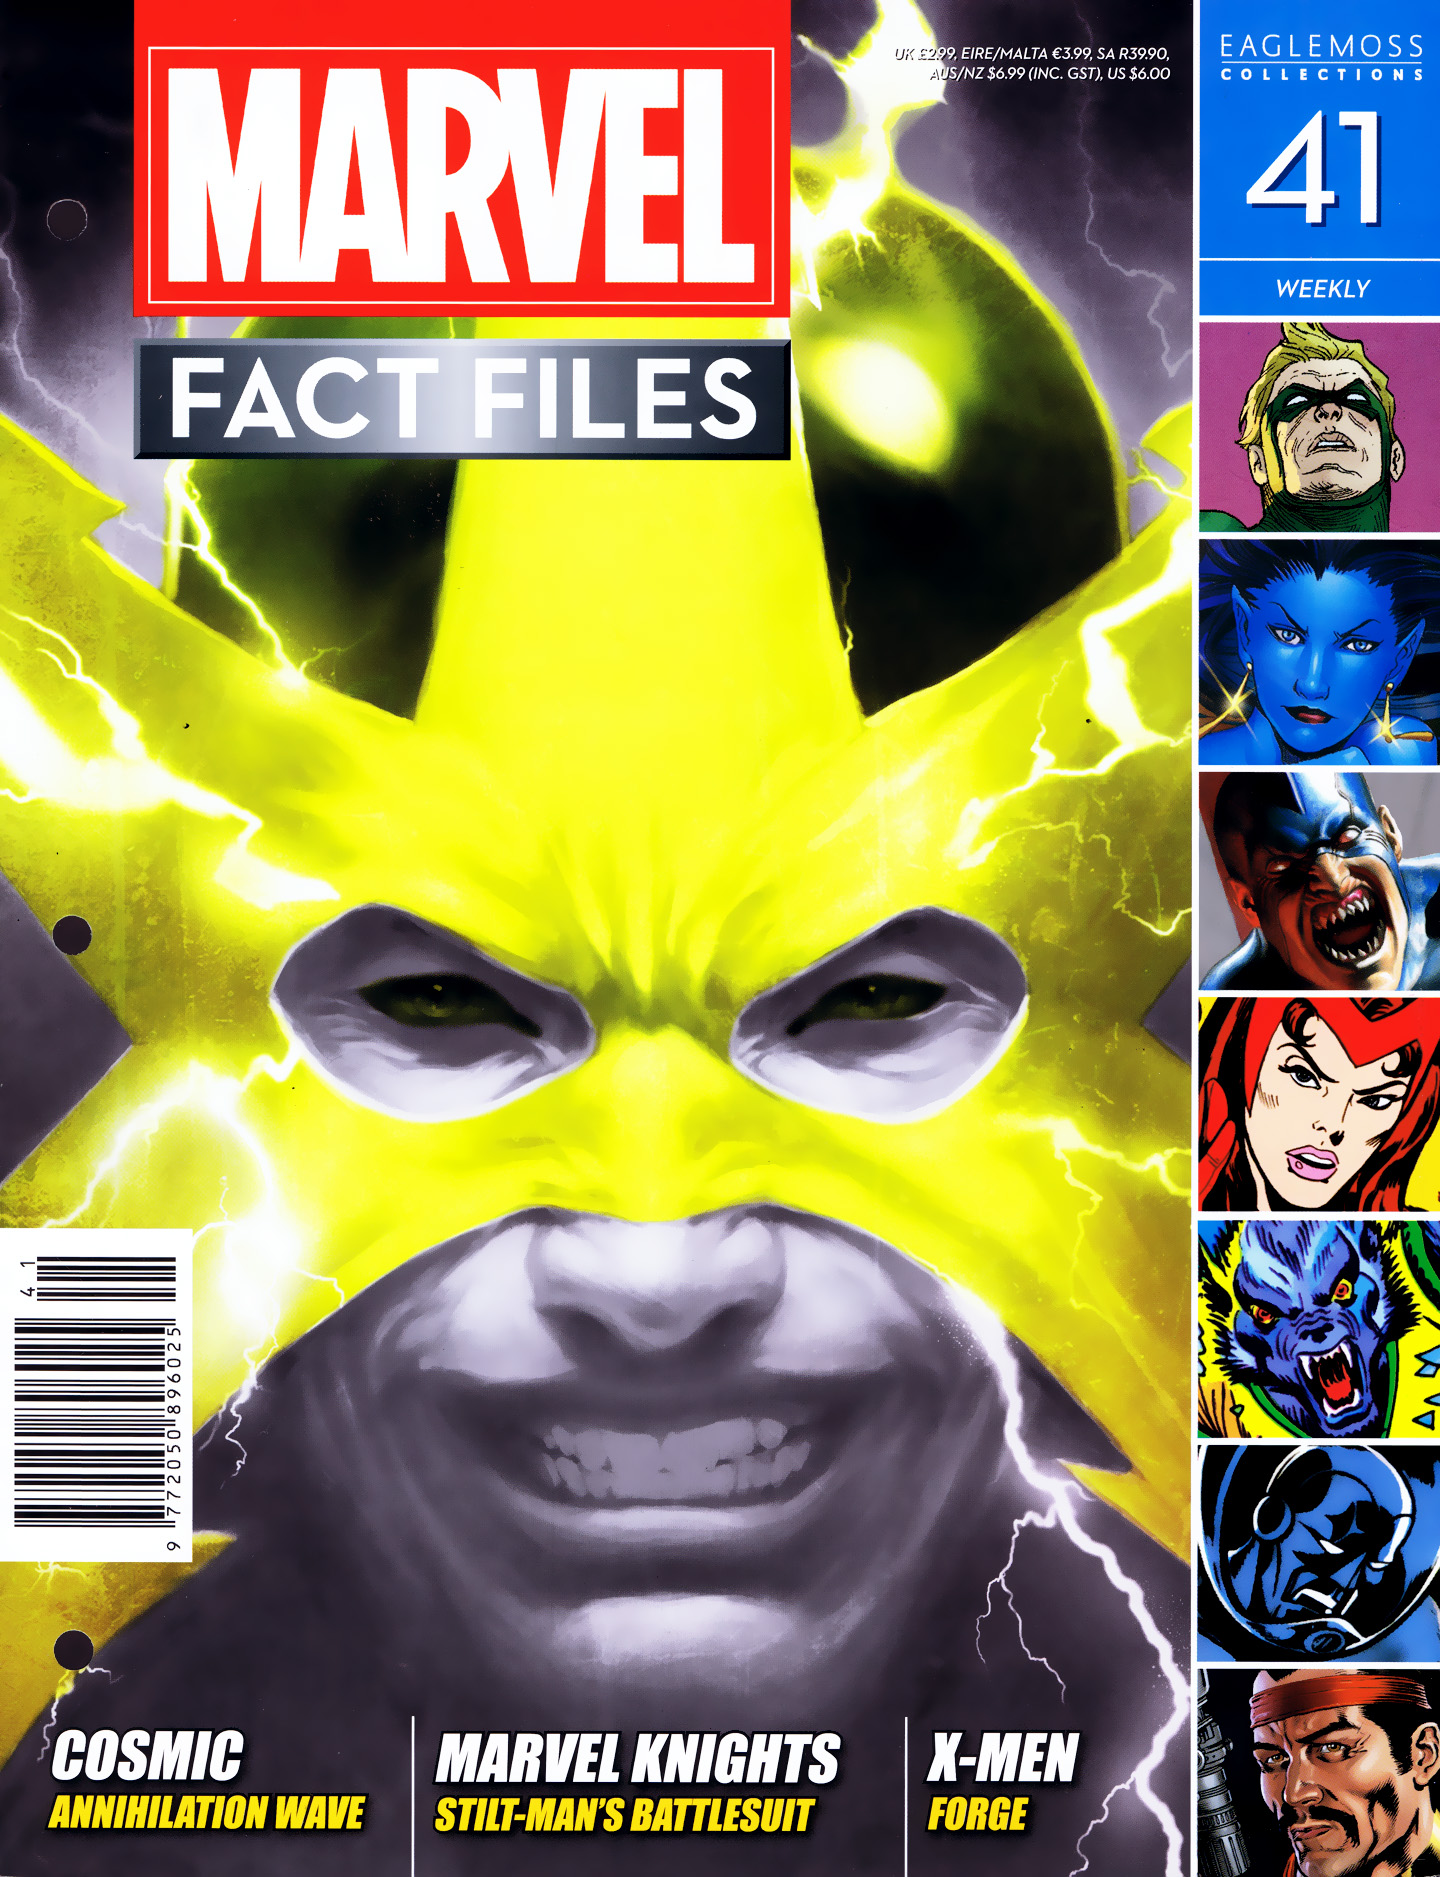 Marvel Fact Files 41 Page 1